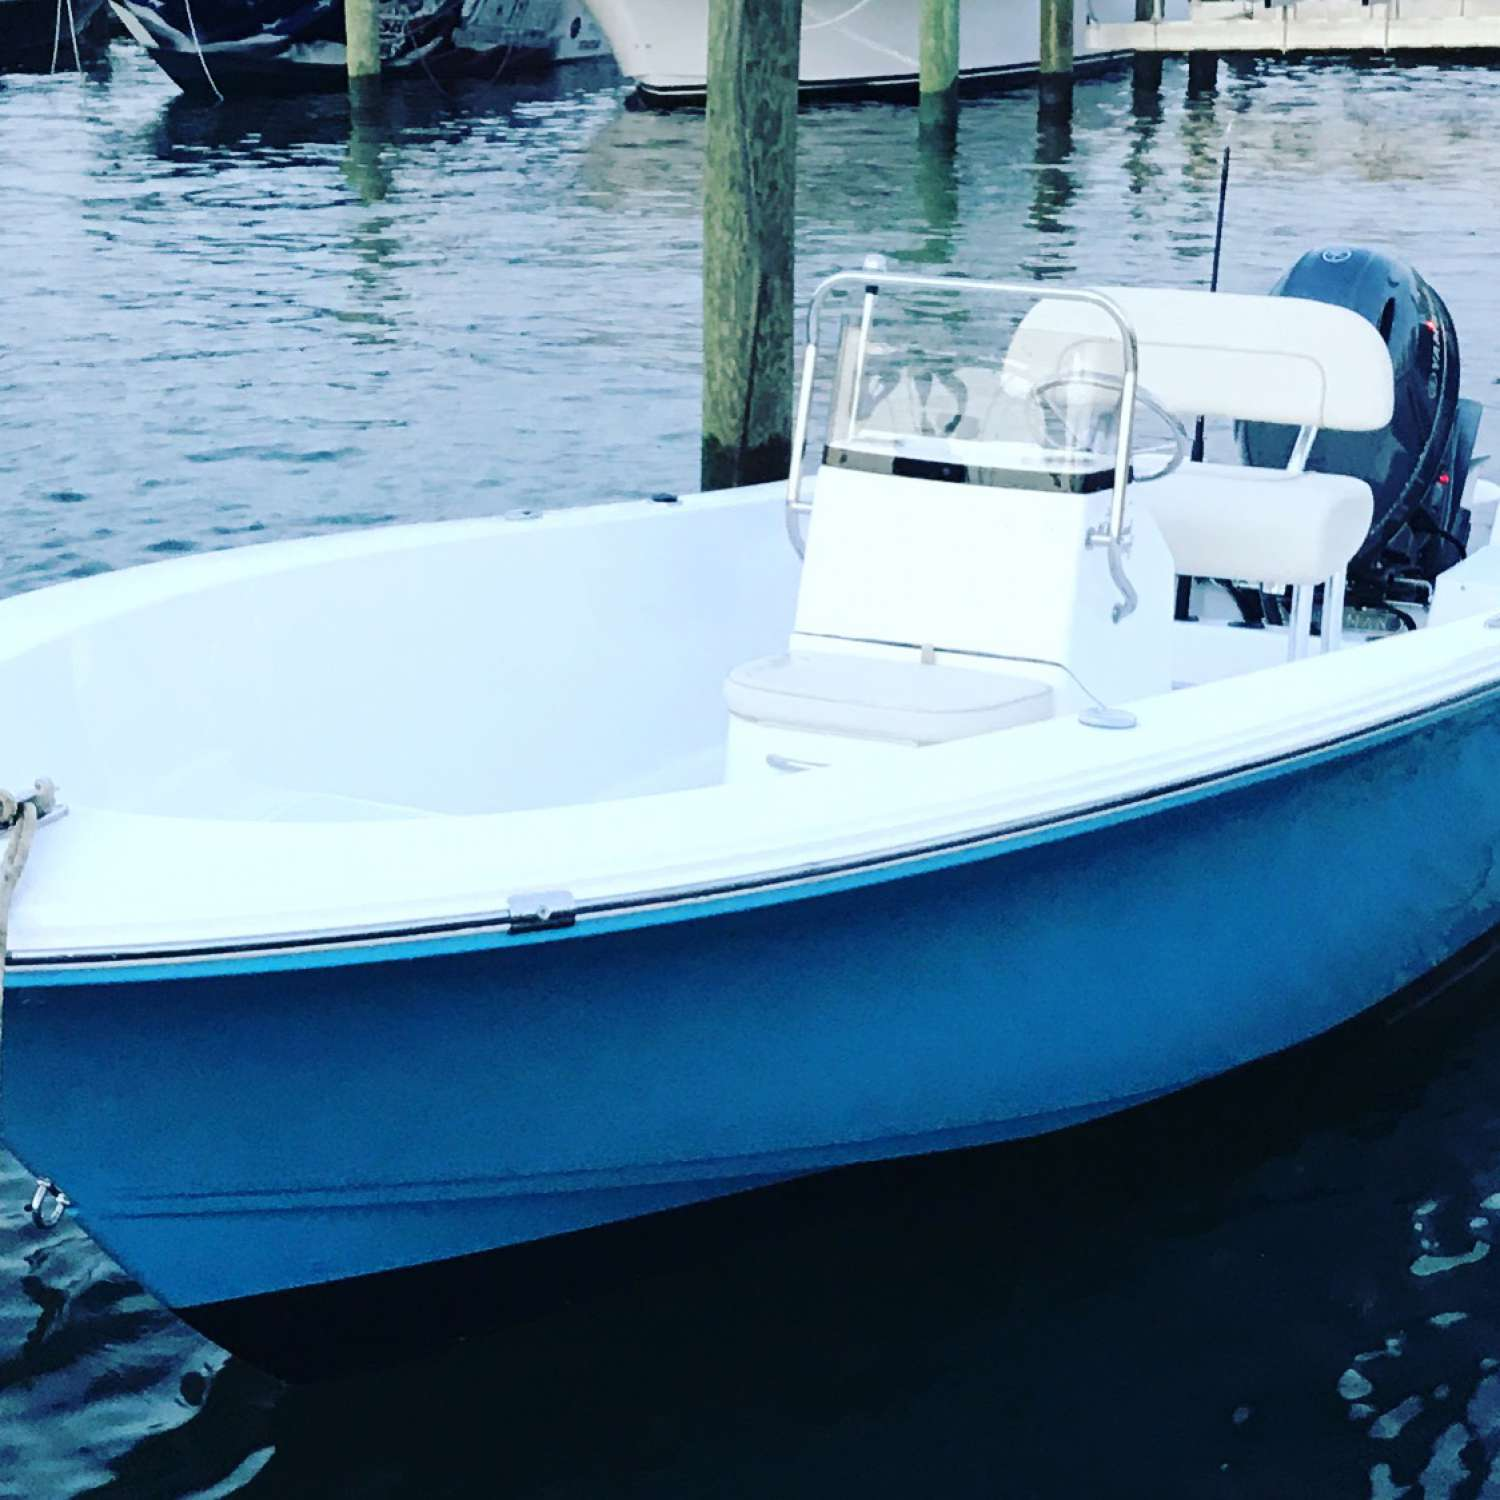 Title: Island Reef 19 - On board their Sportsman Island Reef 19 Center Console - Location: Wall, New Jersey. Participating in the Photo Contest #SportsmanSeptember2017